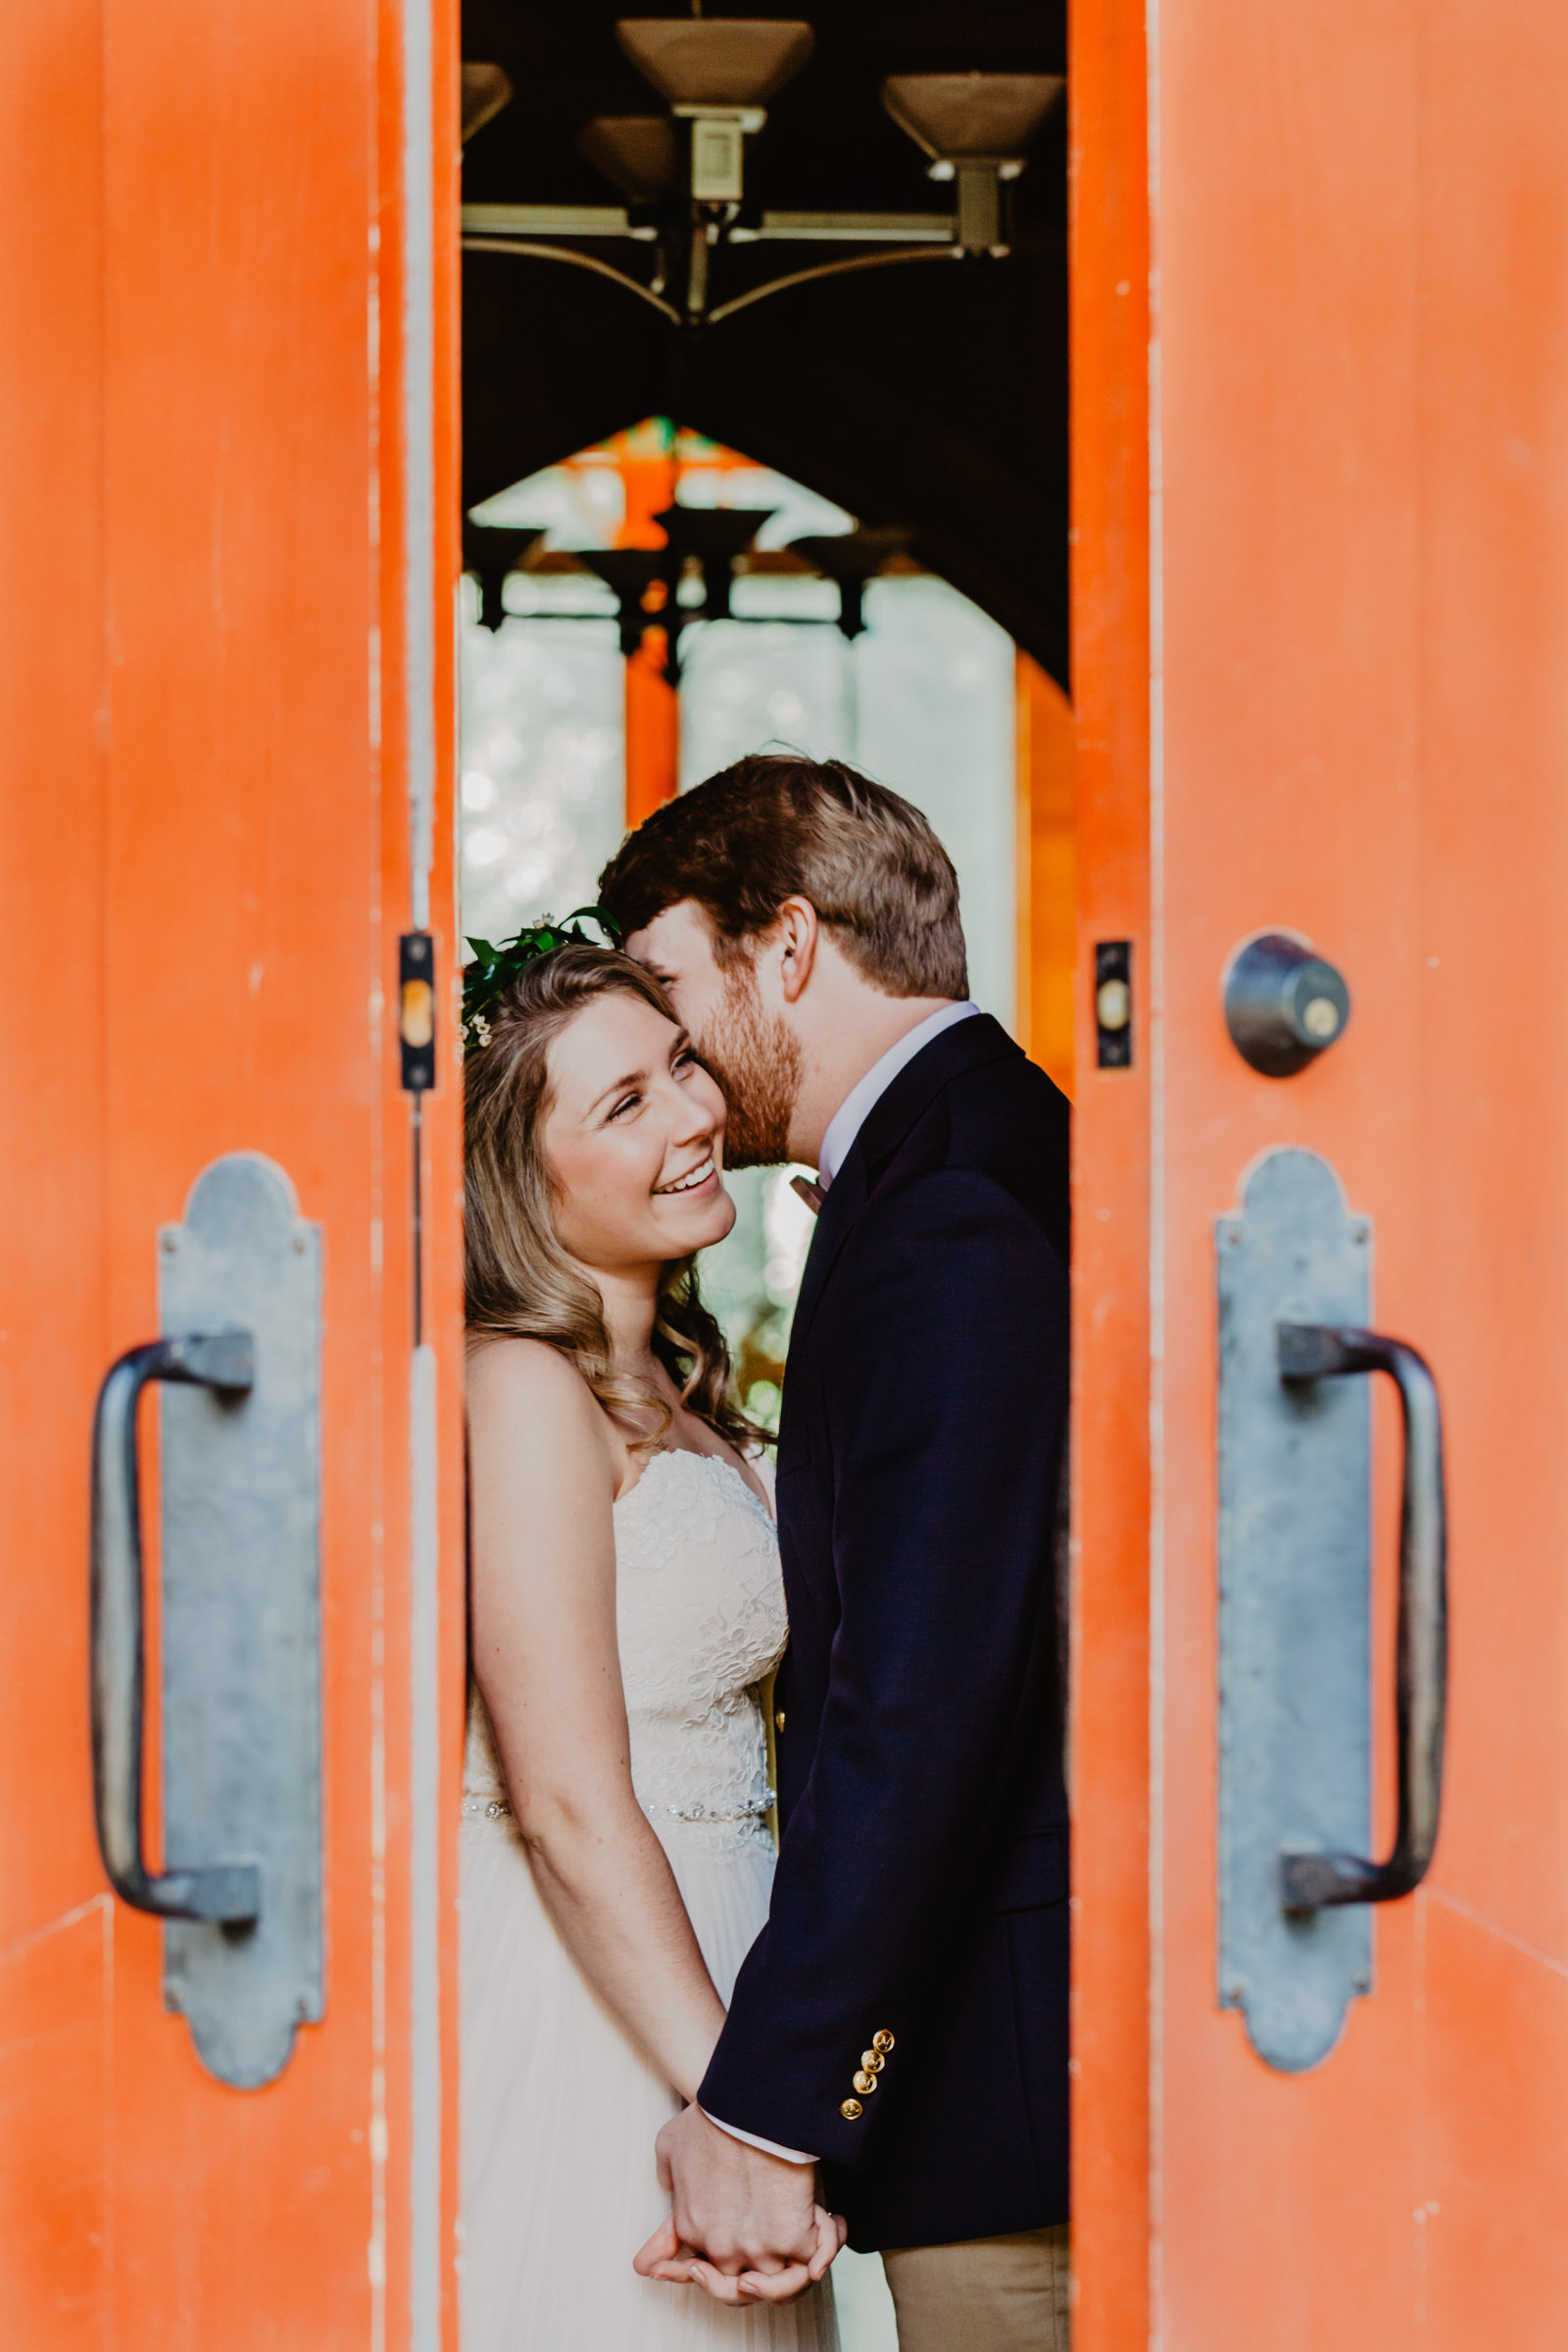 With the doors cracked Groom leans down and whispers in Brides ear.